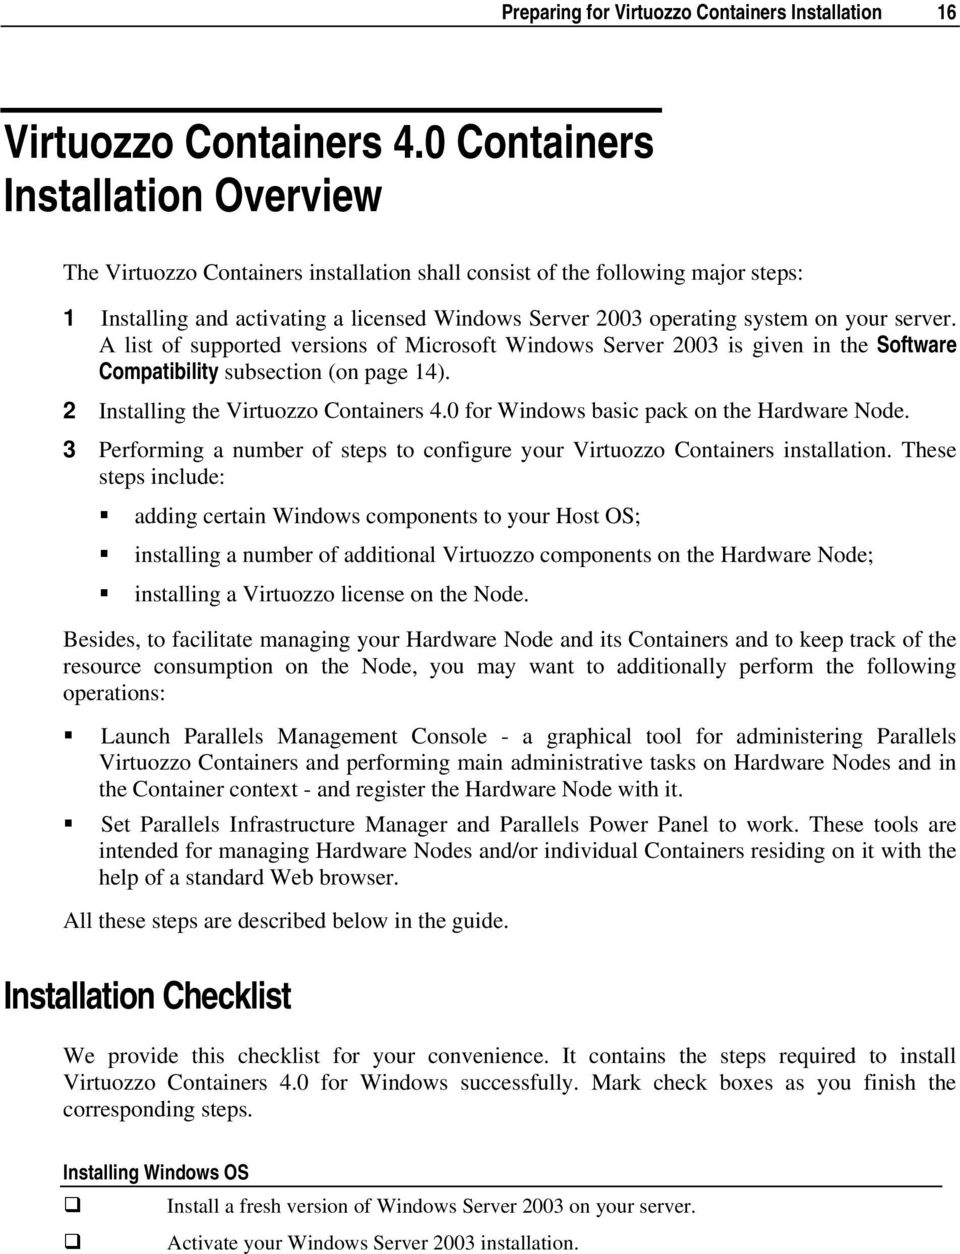 your server. A list of supported versions of Microsoft Windows Server 2003 is given in the Software Compatibility subsection (on page 14). 2 Installing the Virtuozzo Containers 4.